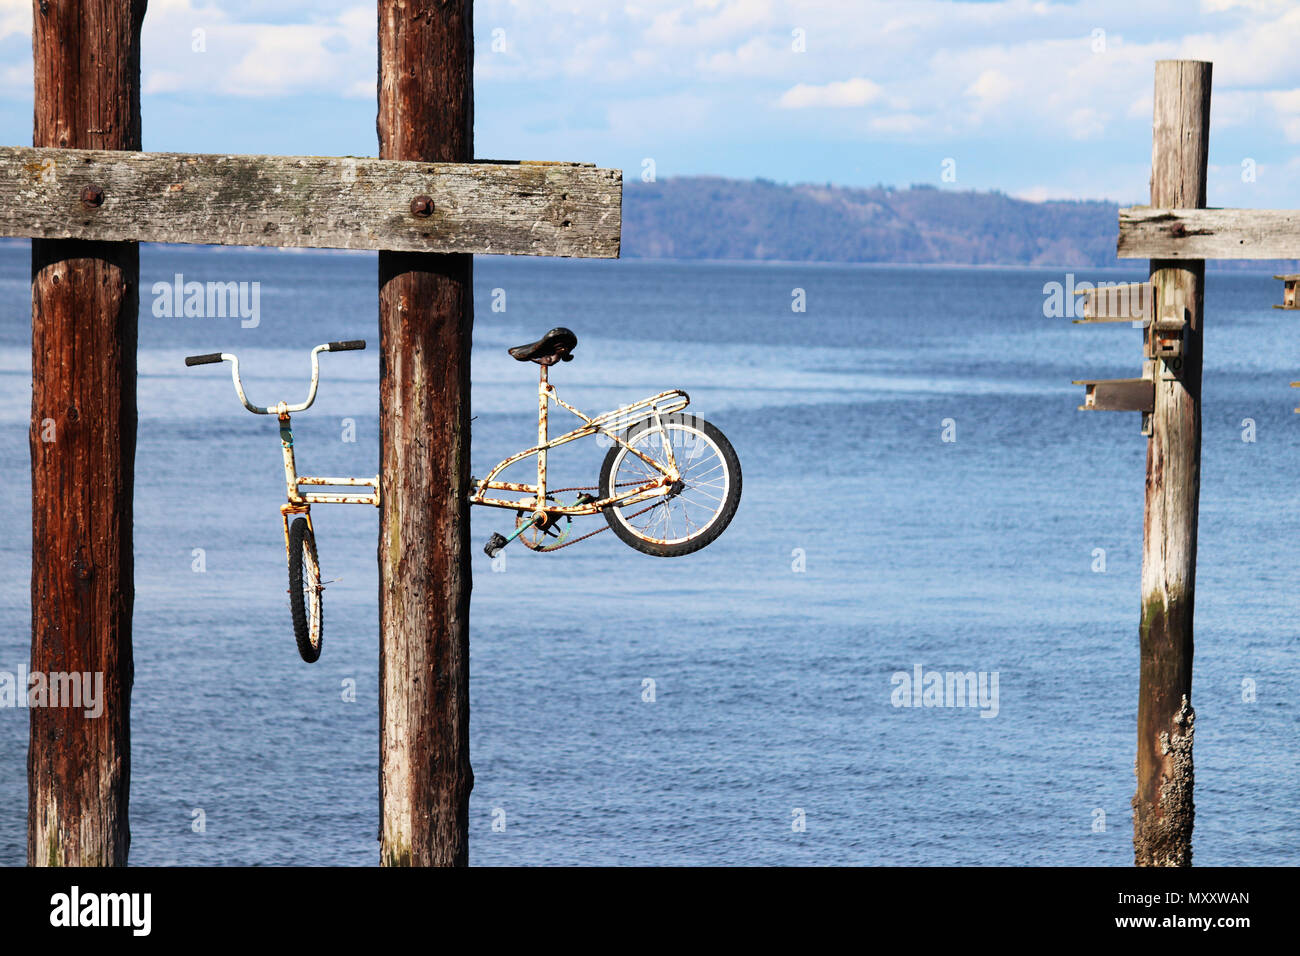 Old rusty bike above water - Stock Image